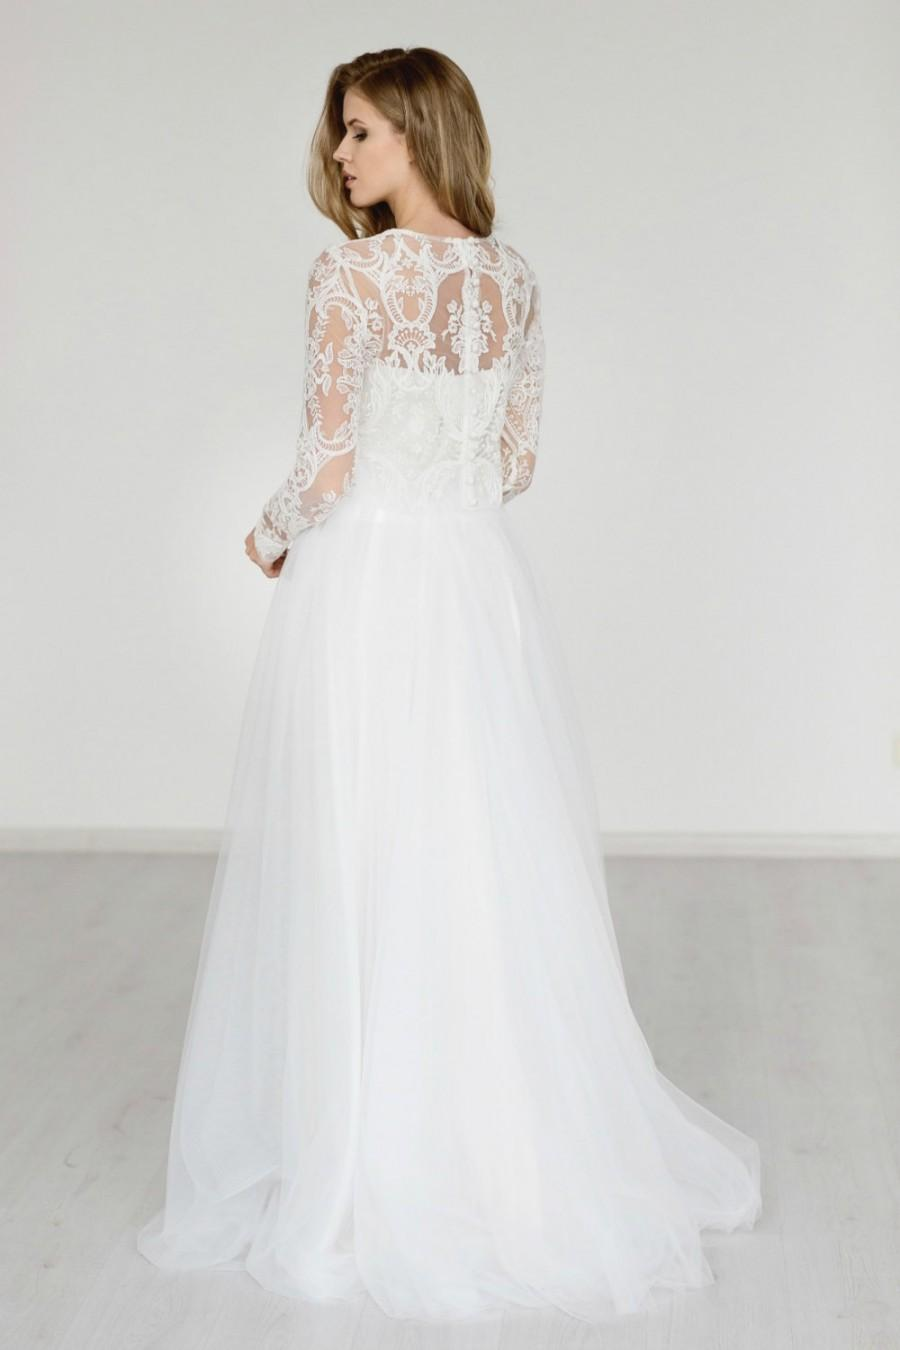 Wedding Skirt Bridal Long Tulle Champagne Ivory White With Train Separates Lily